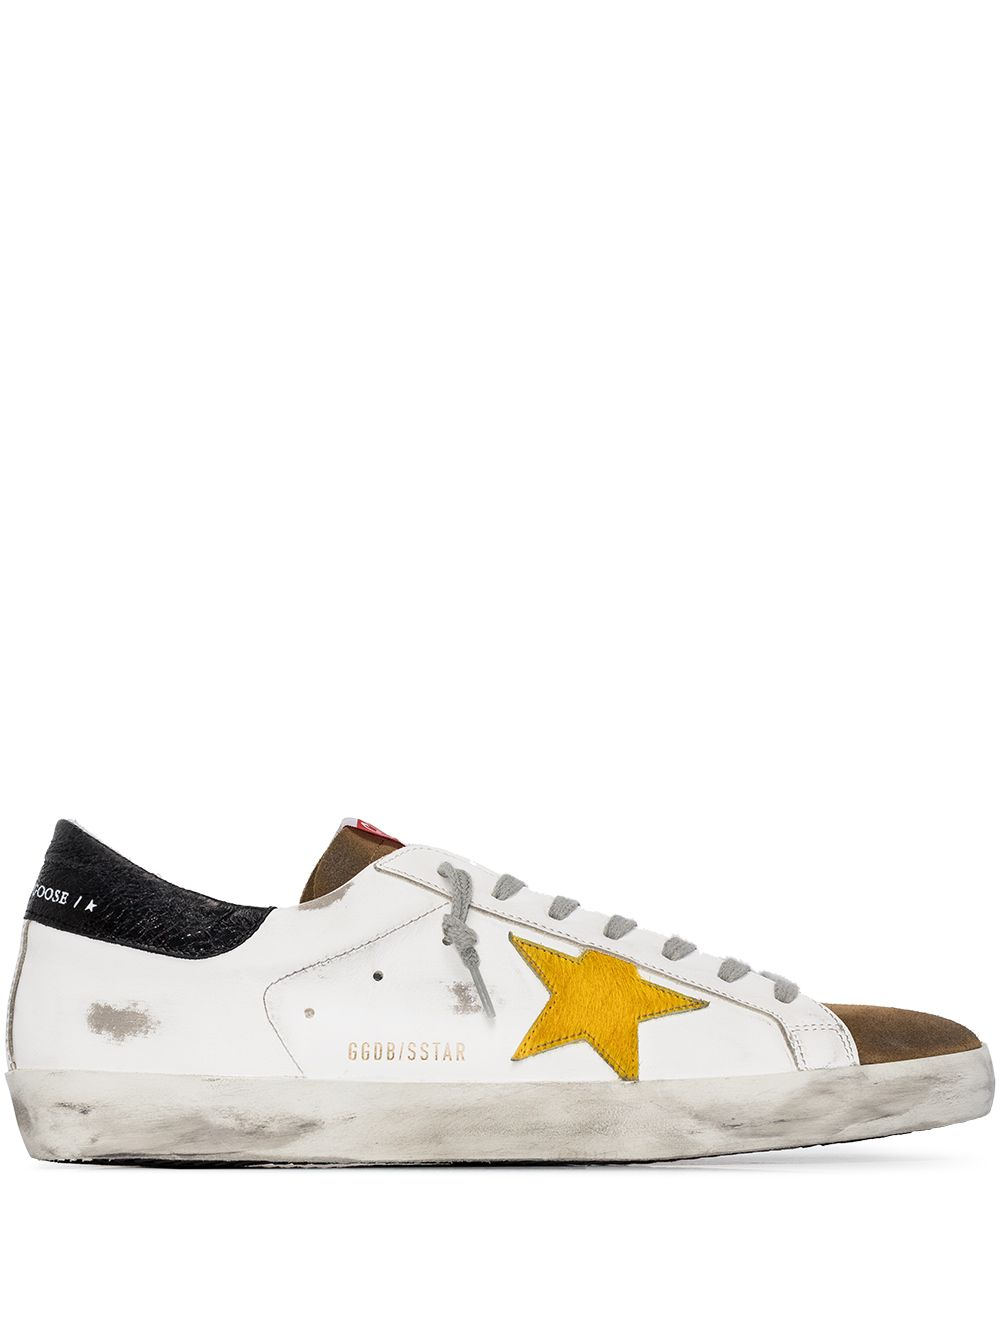 White and Brown Super Star Man Sneakers